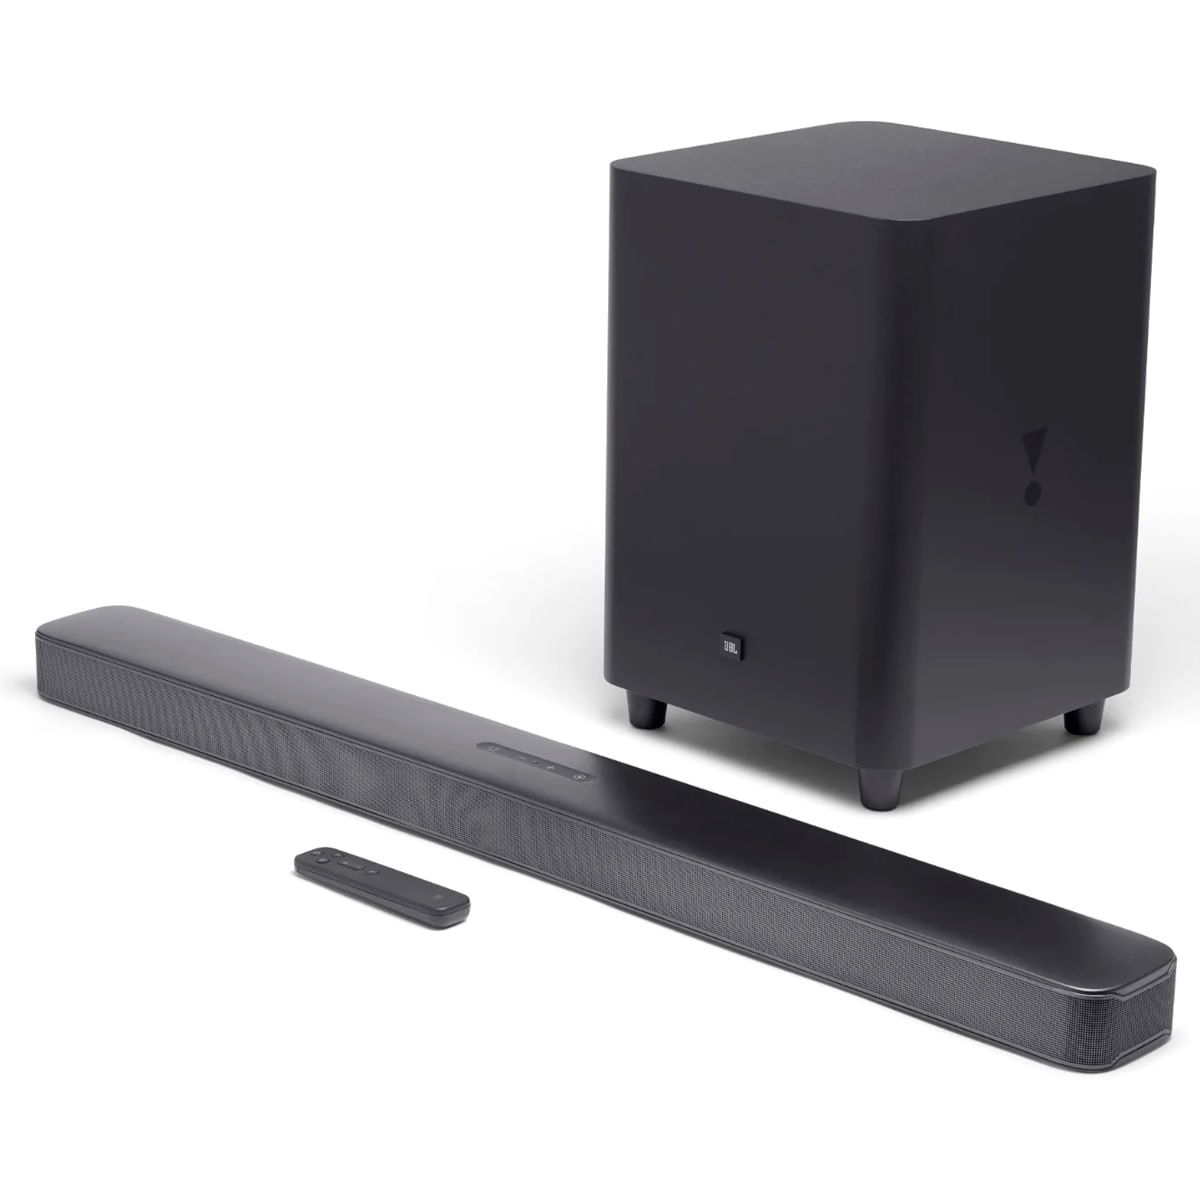 01-JBL-SOUNDBAR-51-SURROUNT-MAIN